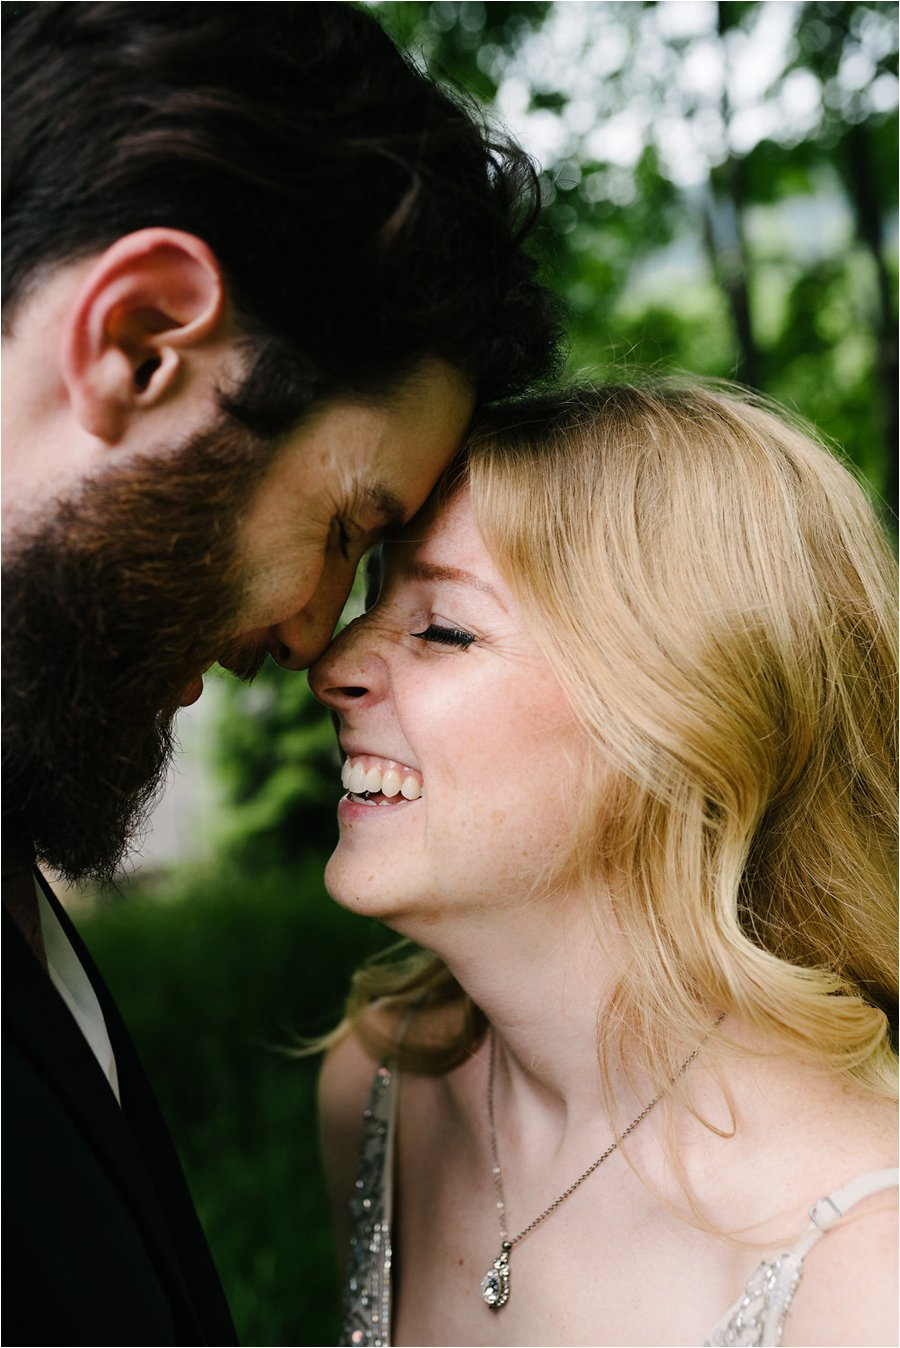 Bride & groom with their foreheads together and laughing - After wedding honeymoon shoot in Wengen by Caroline Hancox Photography